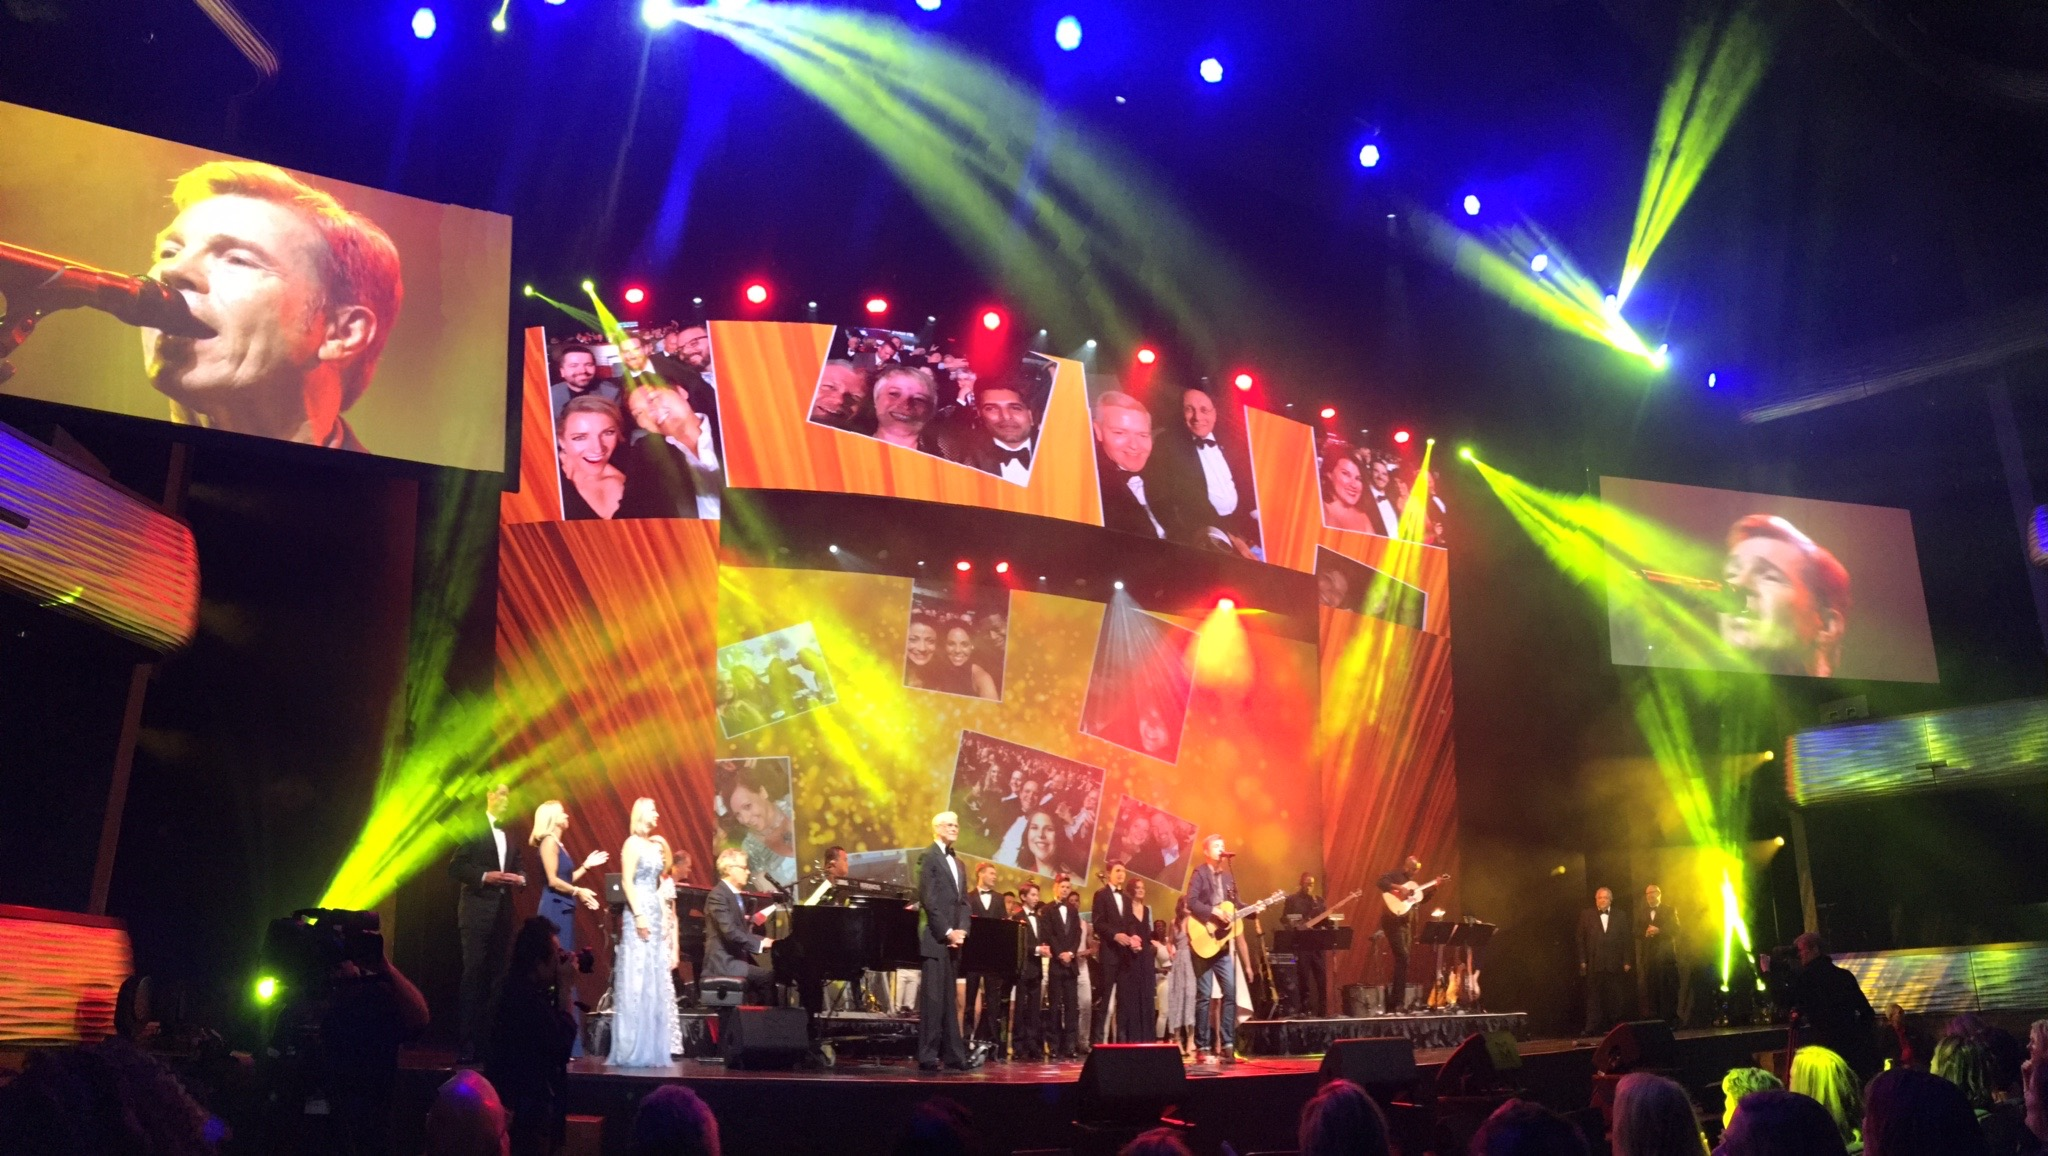 """Lionel performs his song """"By Design"""" with David Foster (on piano) band for the Freeman 90th Anniversary Show in Dallas. Congratulations, Freeman!"""